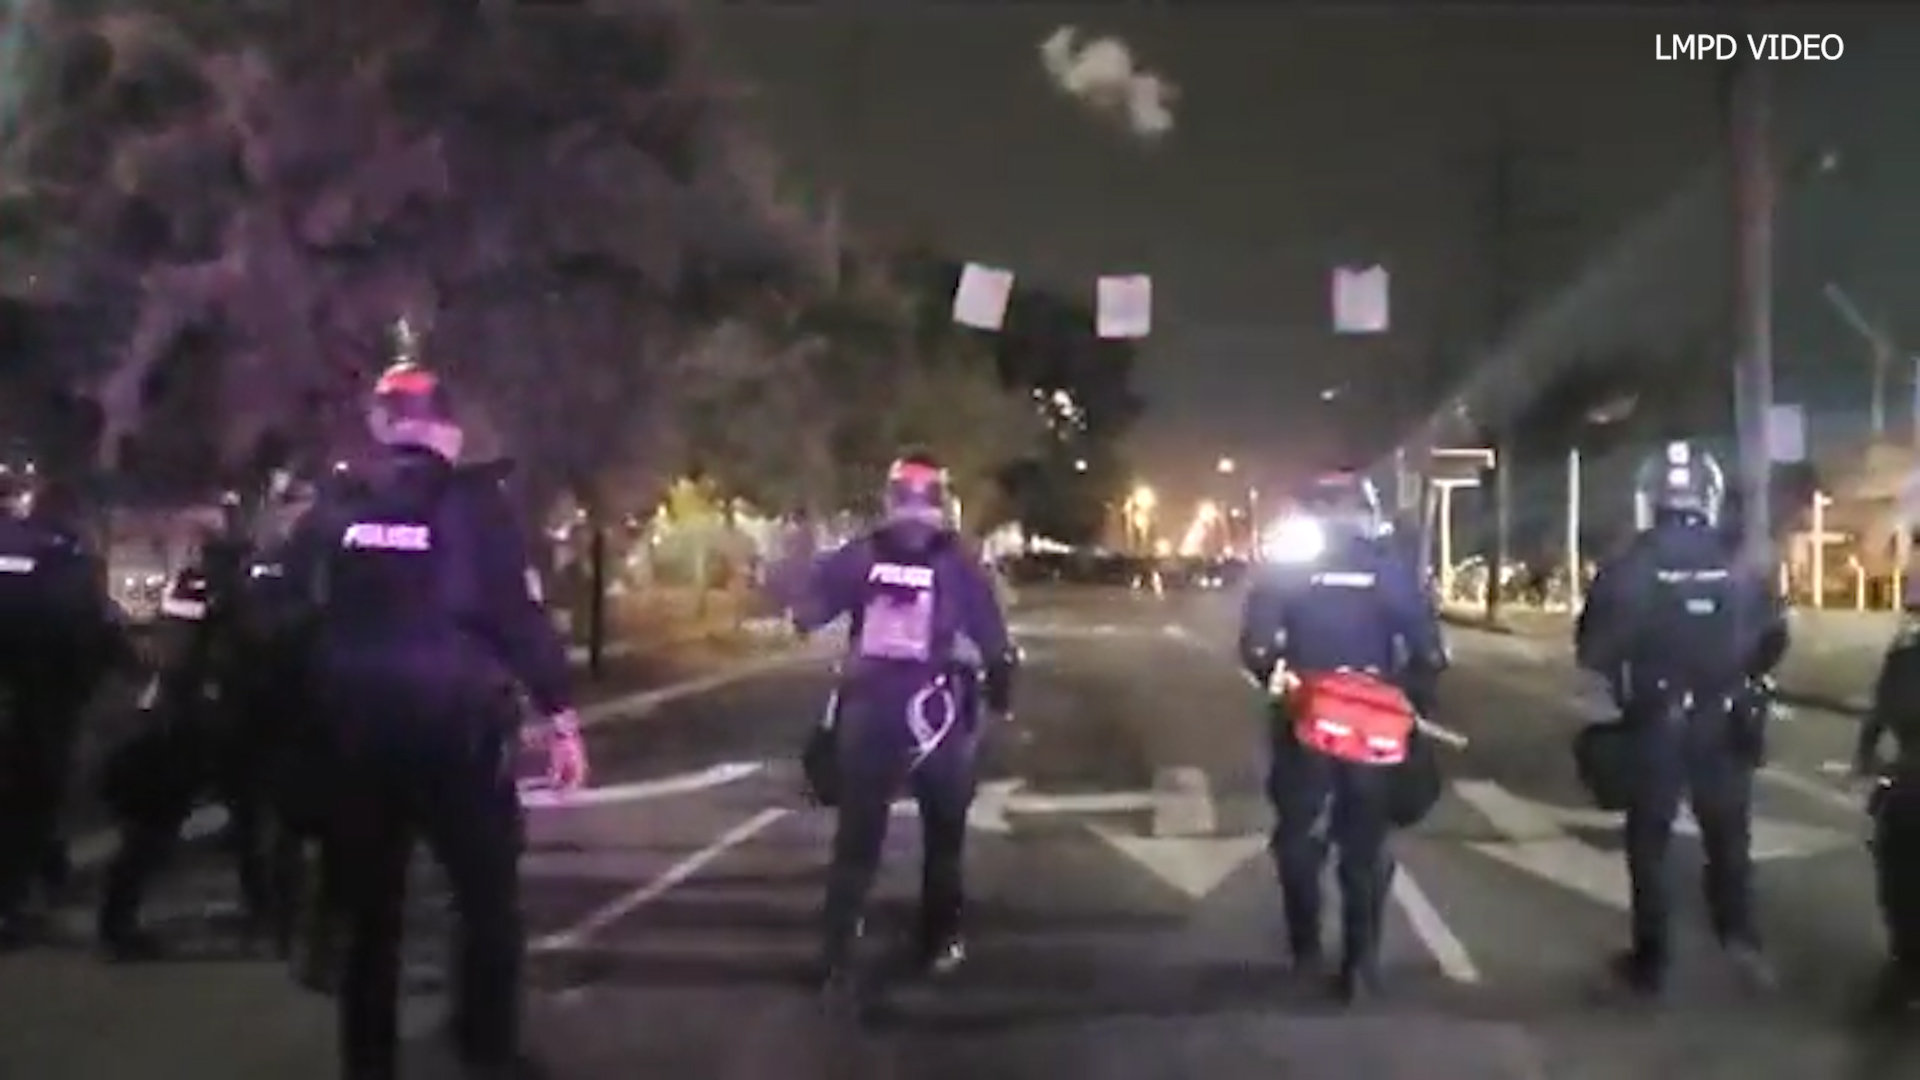 Two officers shot during protests in Louisville